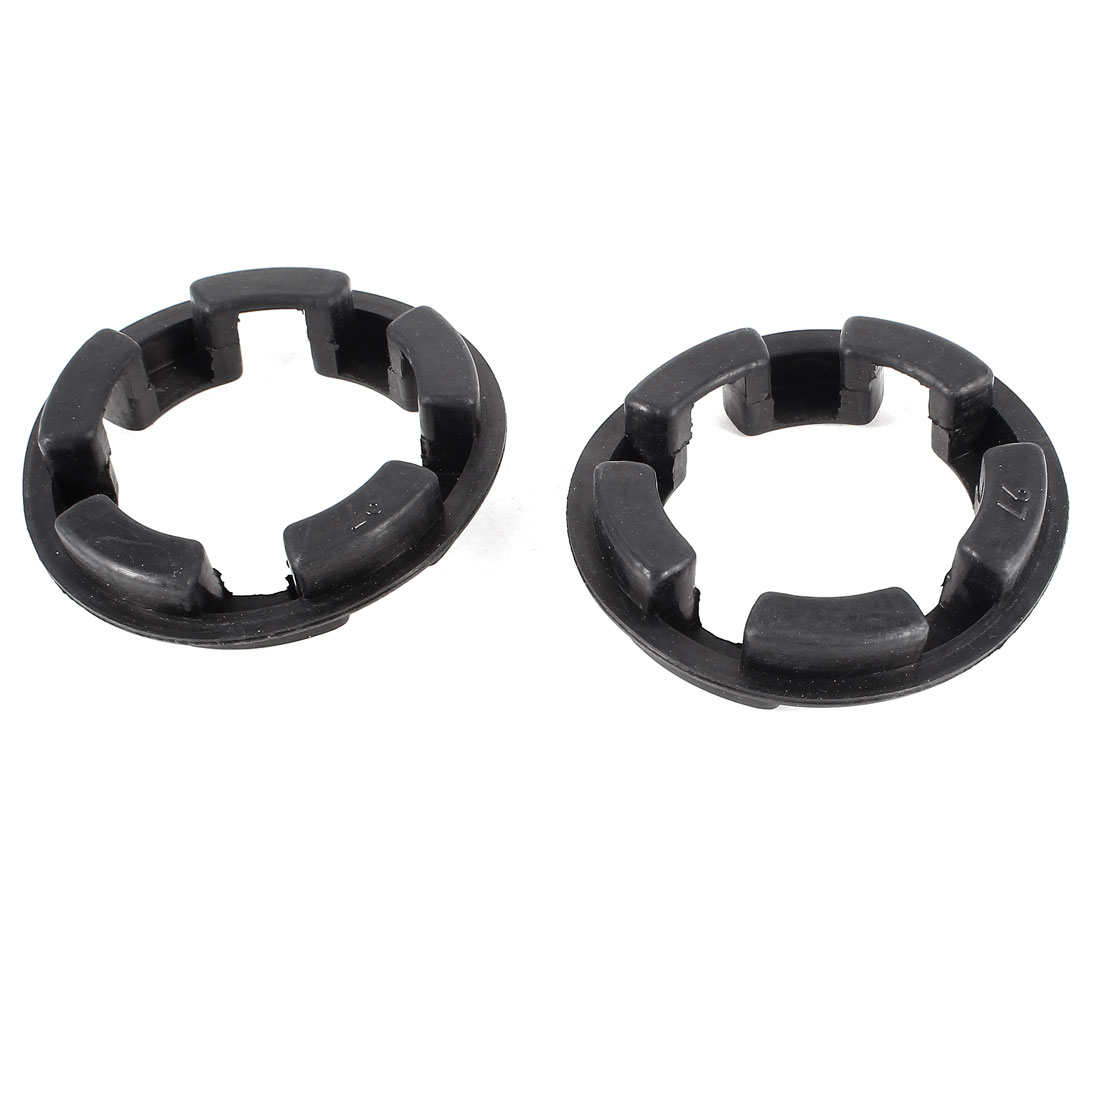 2Pcs Rubber 97mm x 65mm x 12mm Shaft Coupling Insert Spider Black